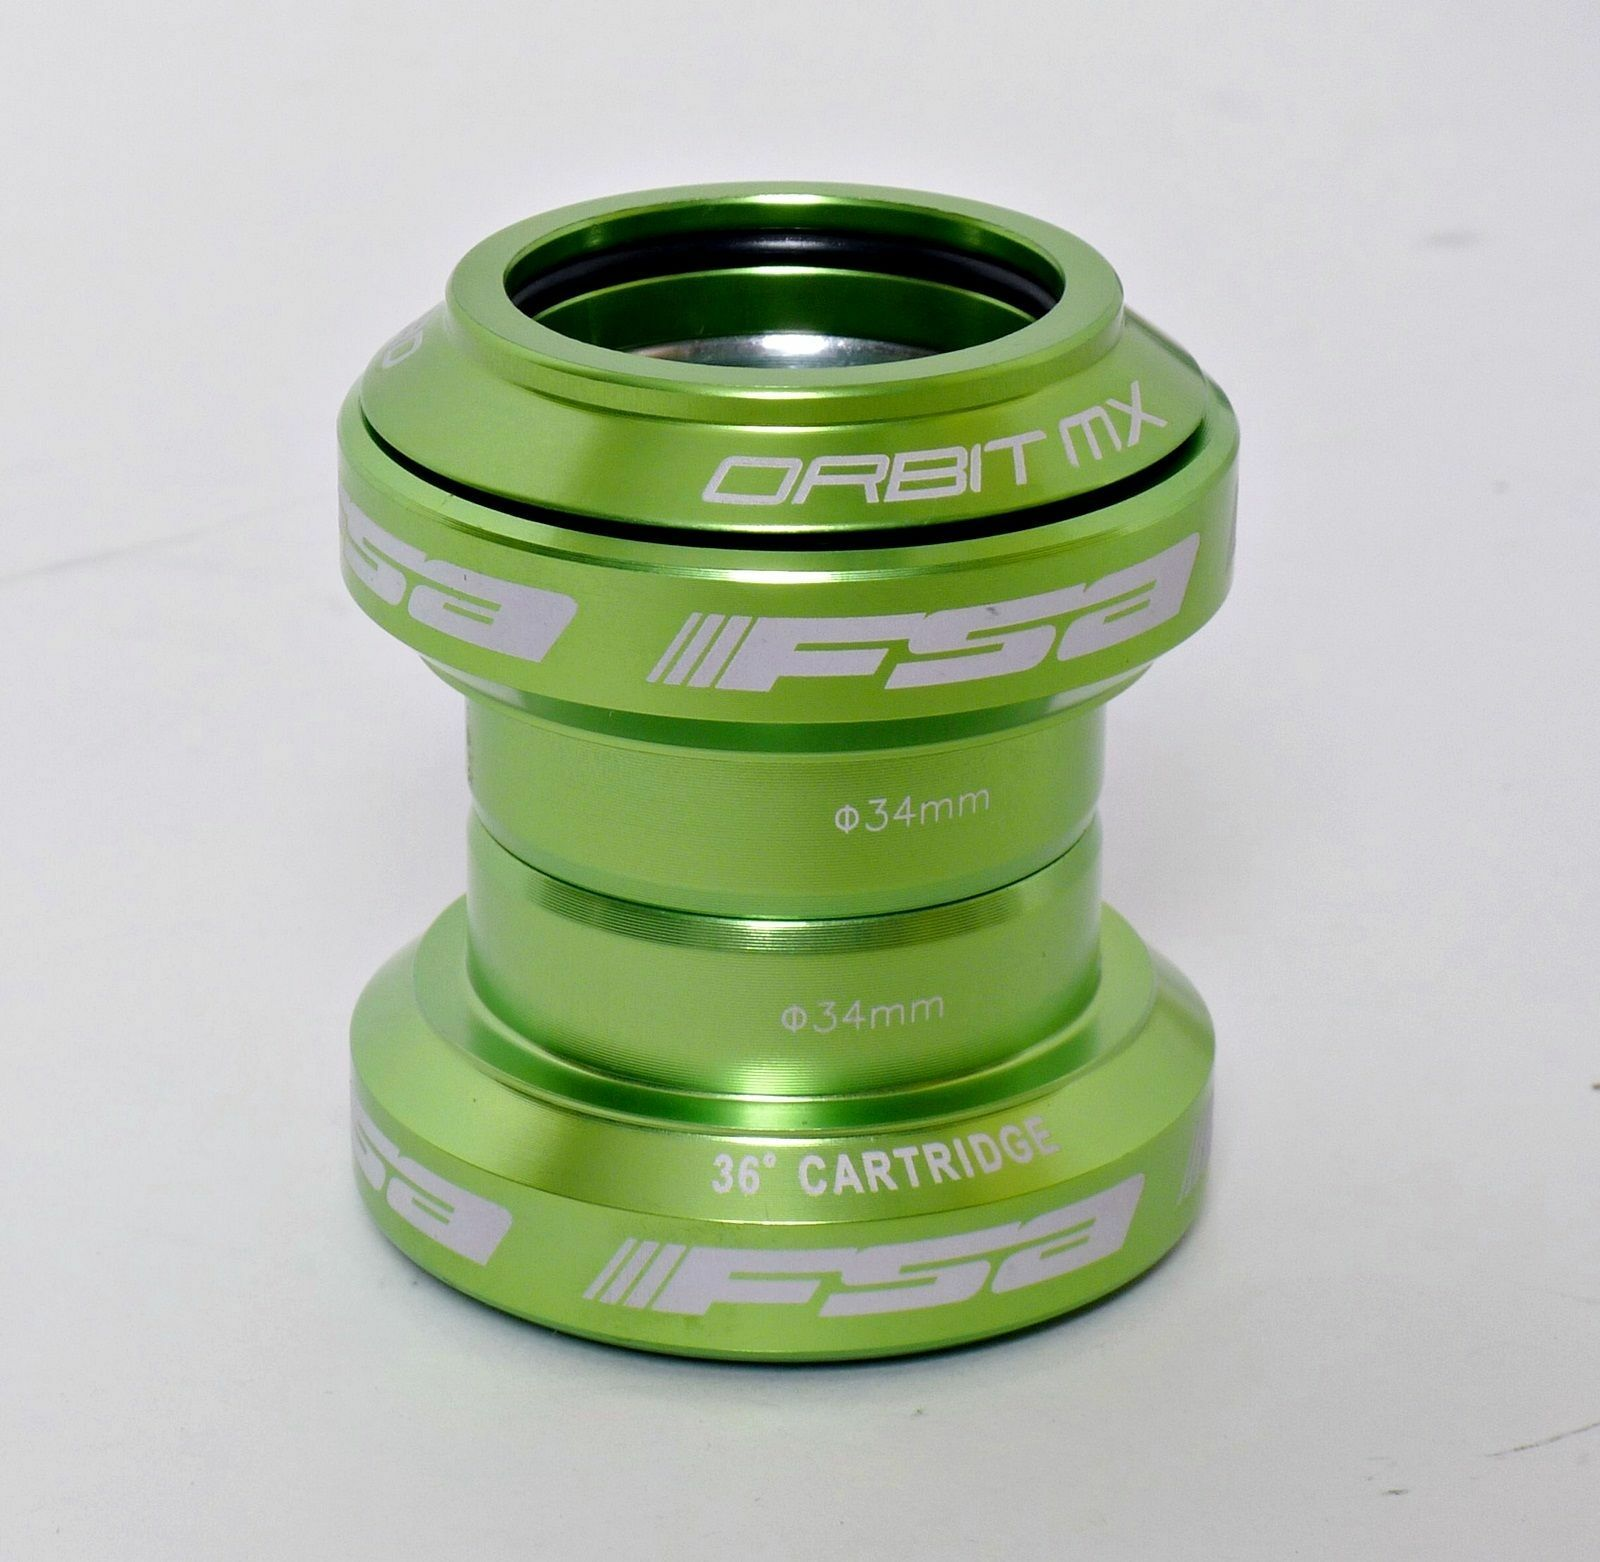 FSA Orbit MX Threadless 1-1 8 Bicycle Headset 34mm  – Green  high quality & fast shipping